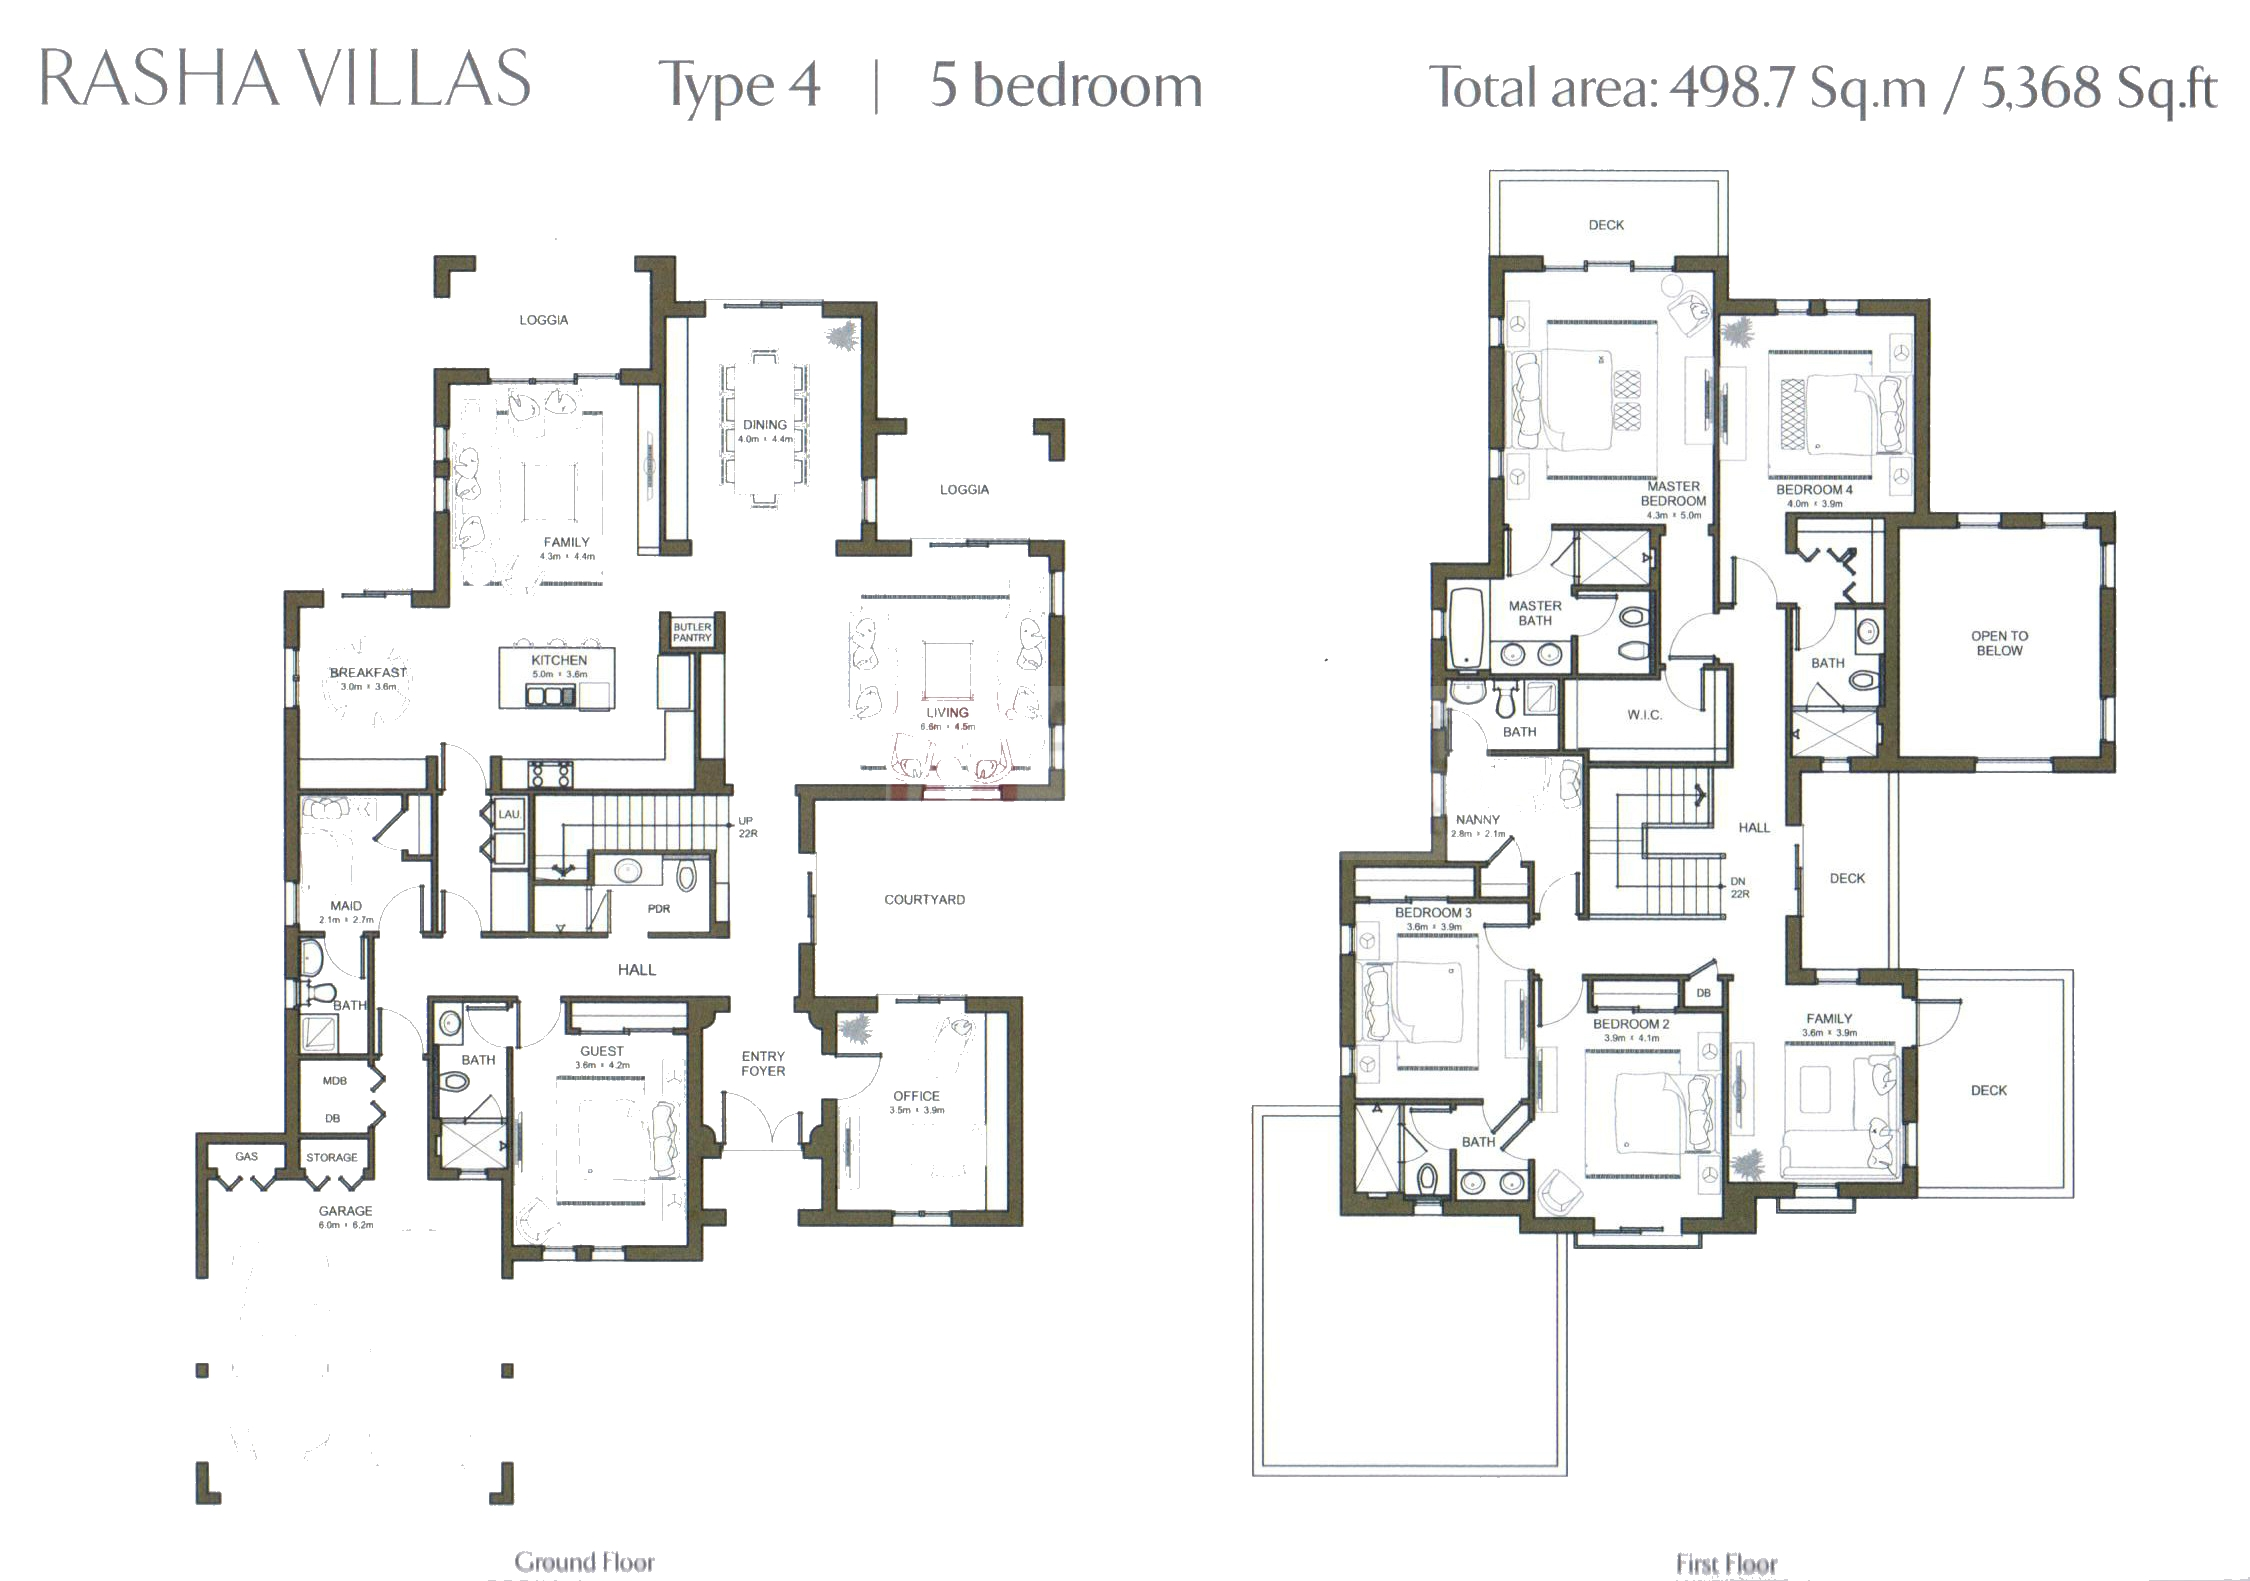 Al rasha villa floor plans arabian ranches dubai for Plan de villa style americain